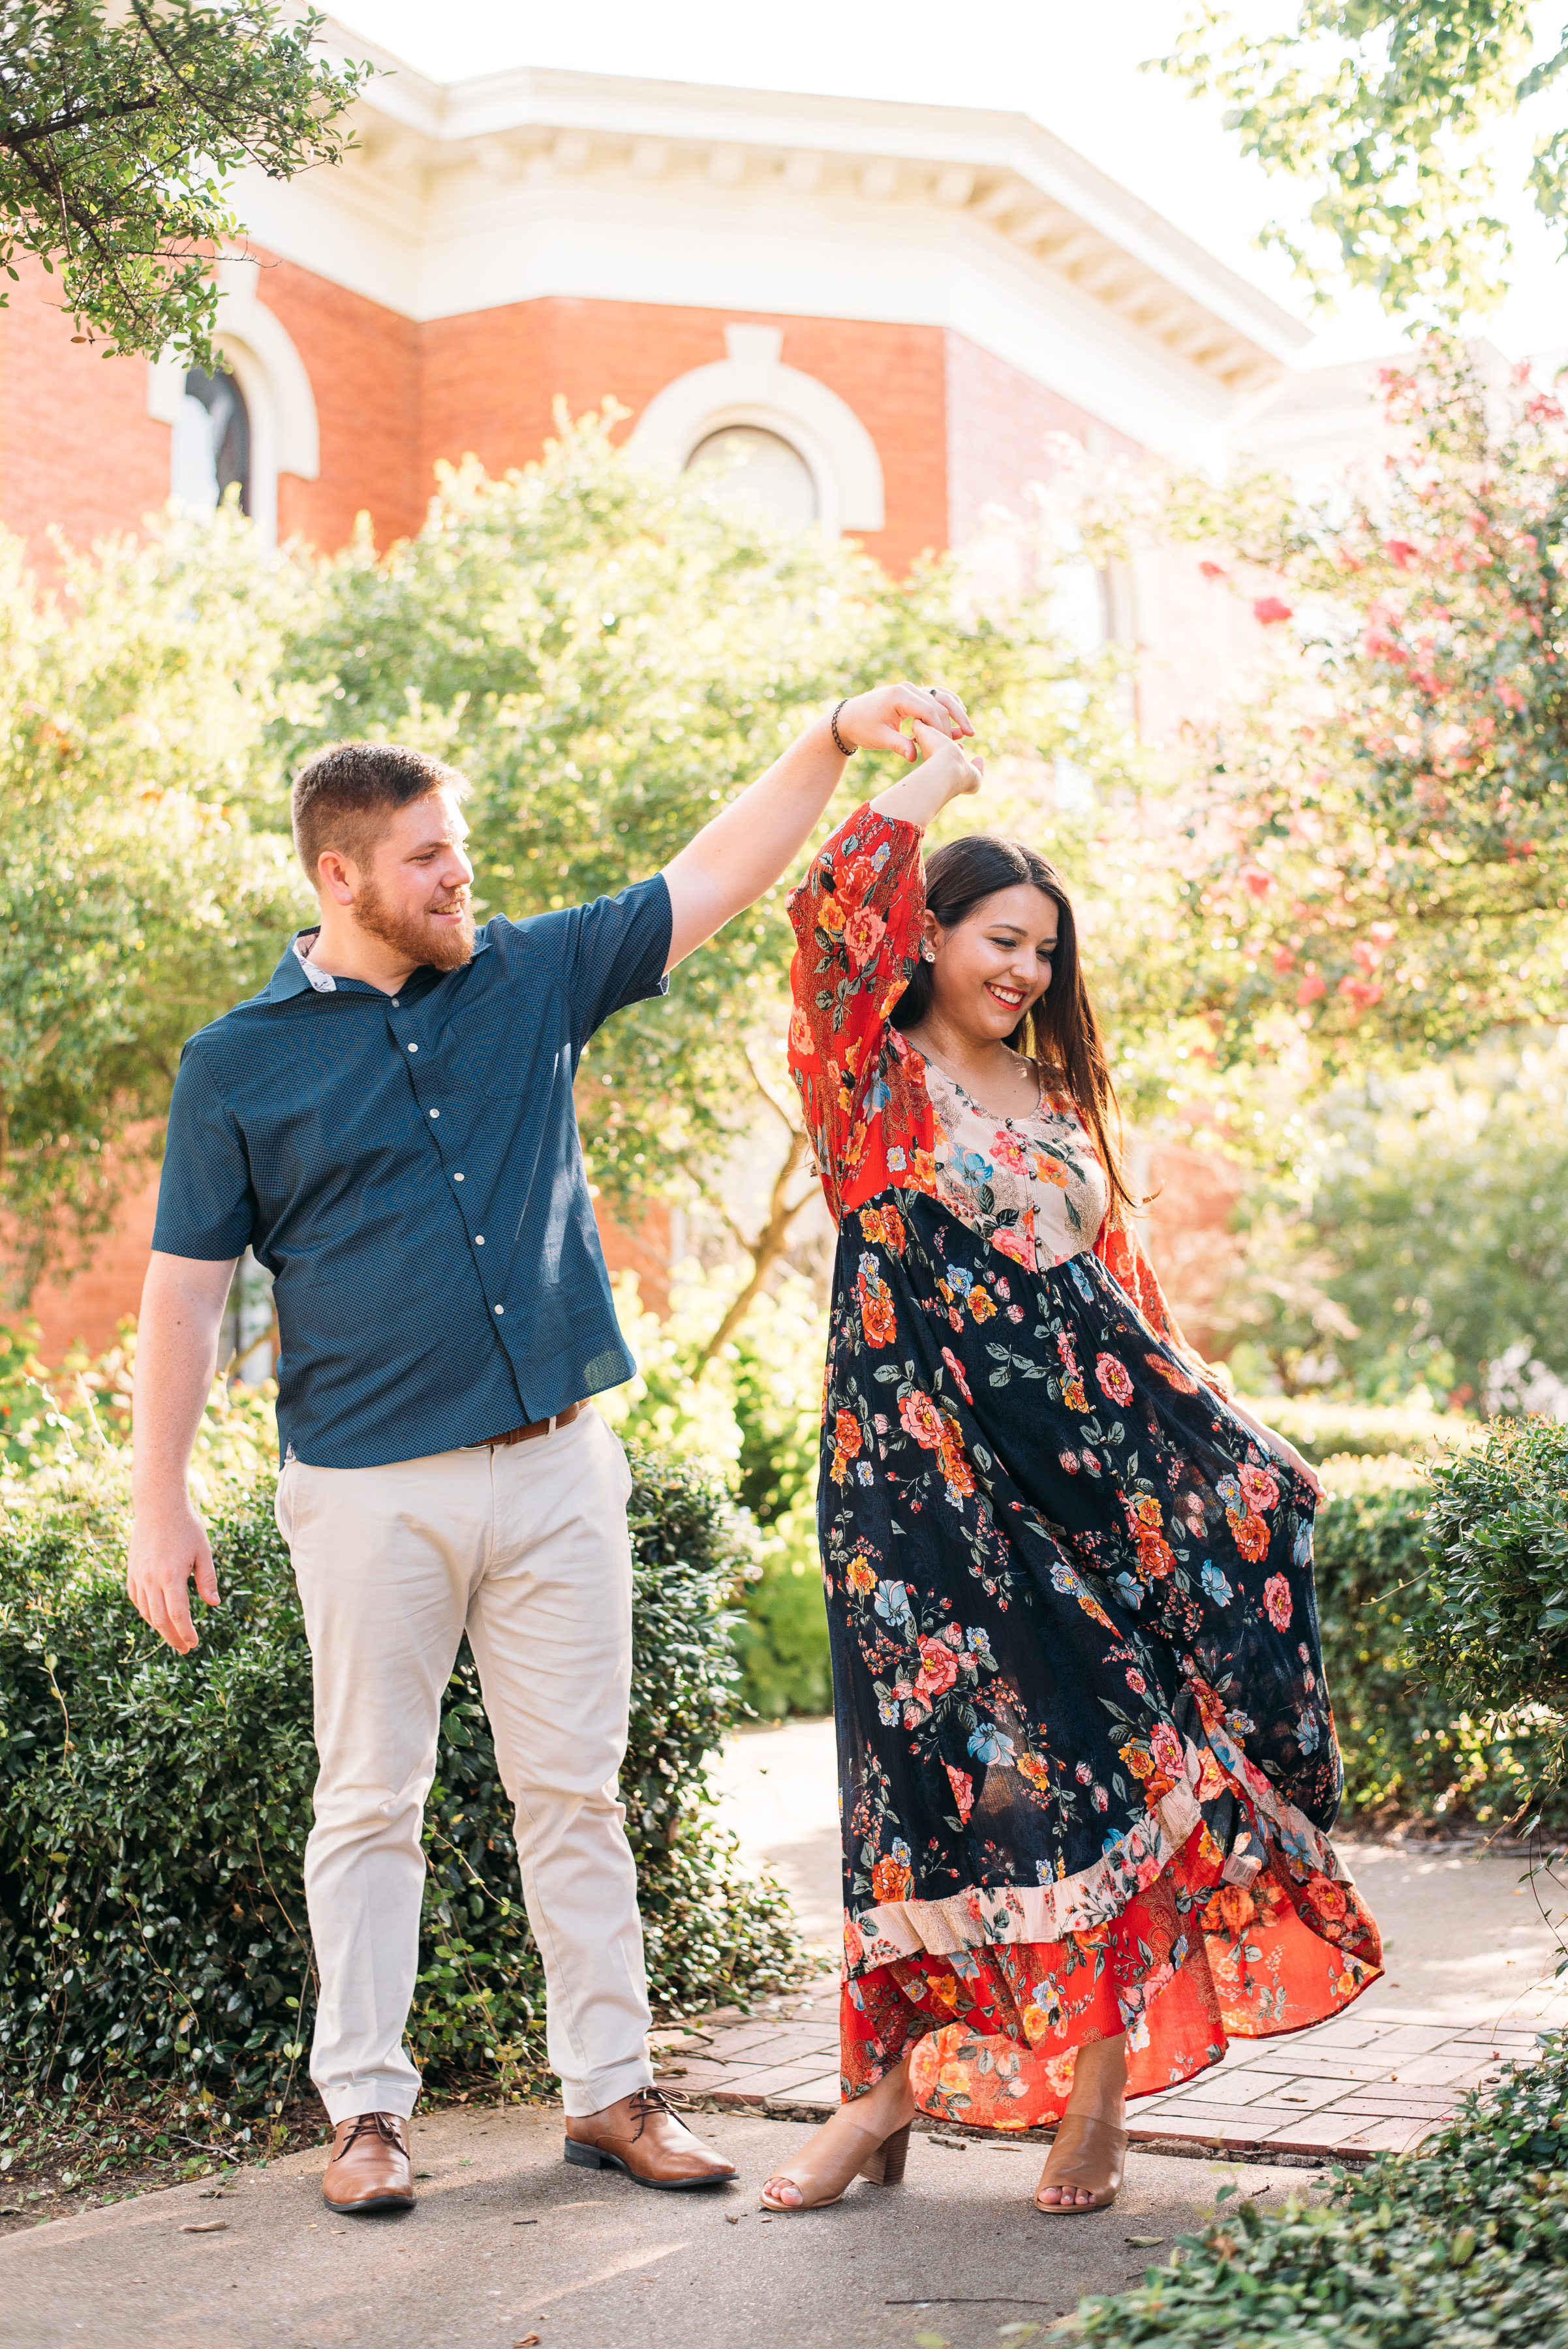 Downtown-Bryan-Engagement-George-Bush-Library-Texas-A&M-University-College-Station-Wedding-Photographer-San-Angel-Photo-Mark-Abigail-Jake-14.jpg